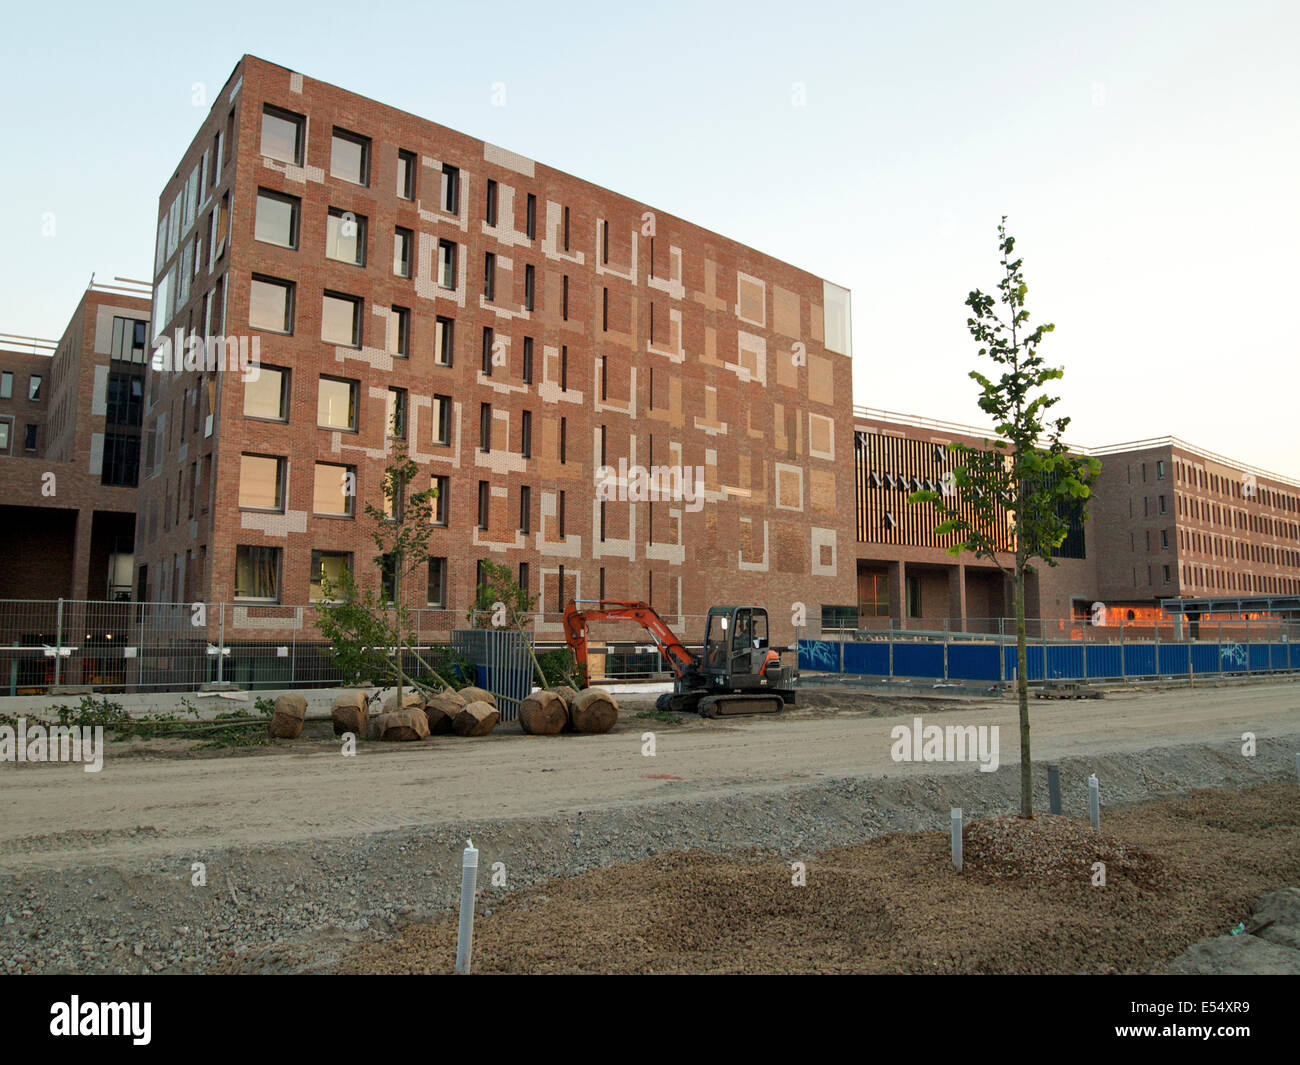 Breda central station nearing completion with the access road being constructed and trees to be planted. The netherlands Stock Photo